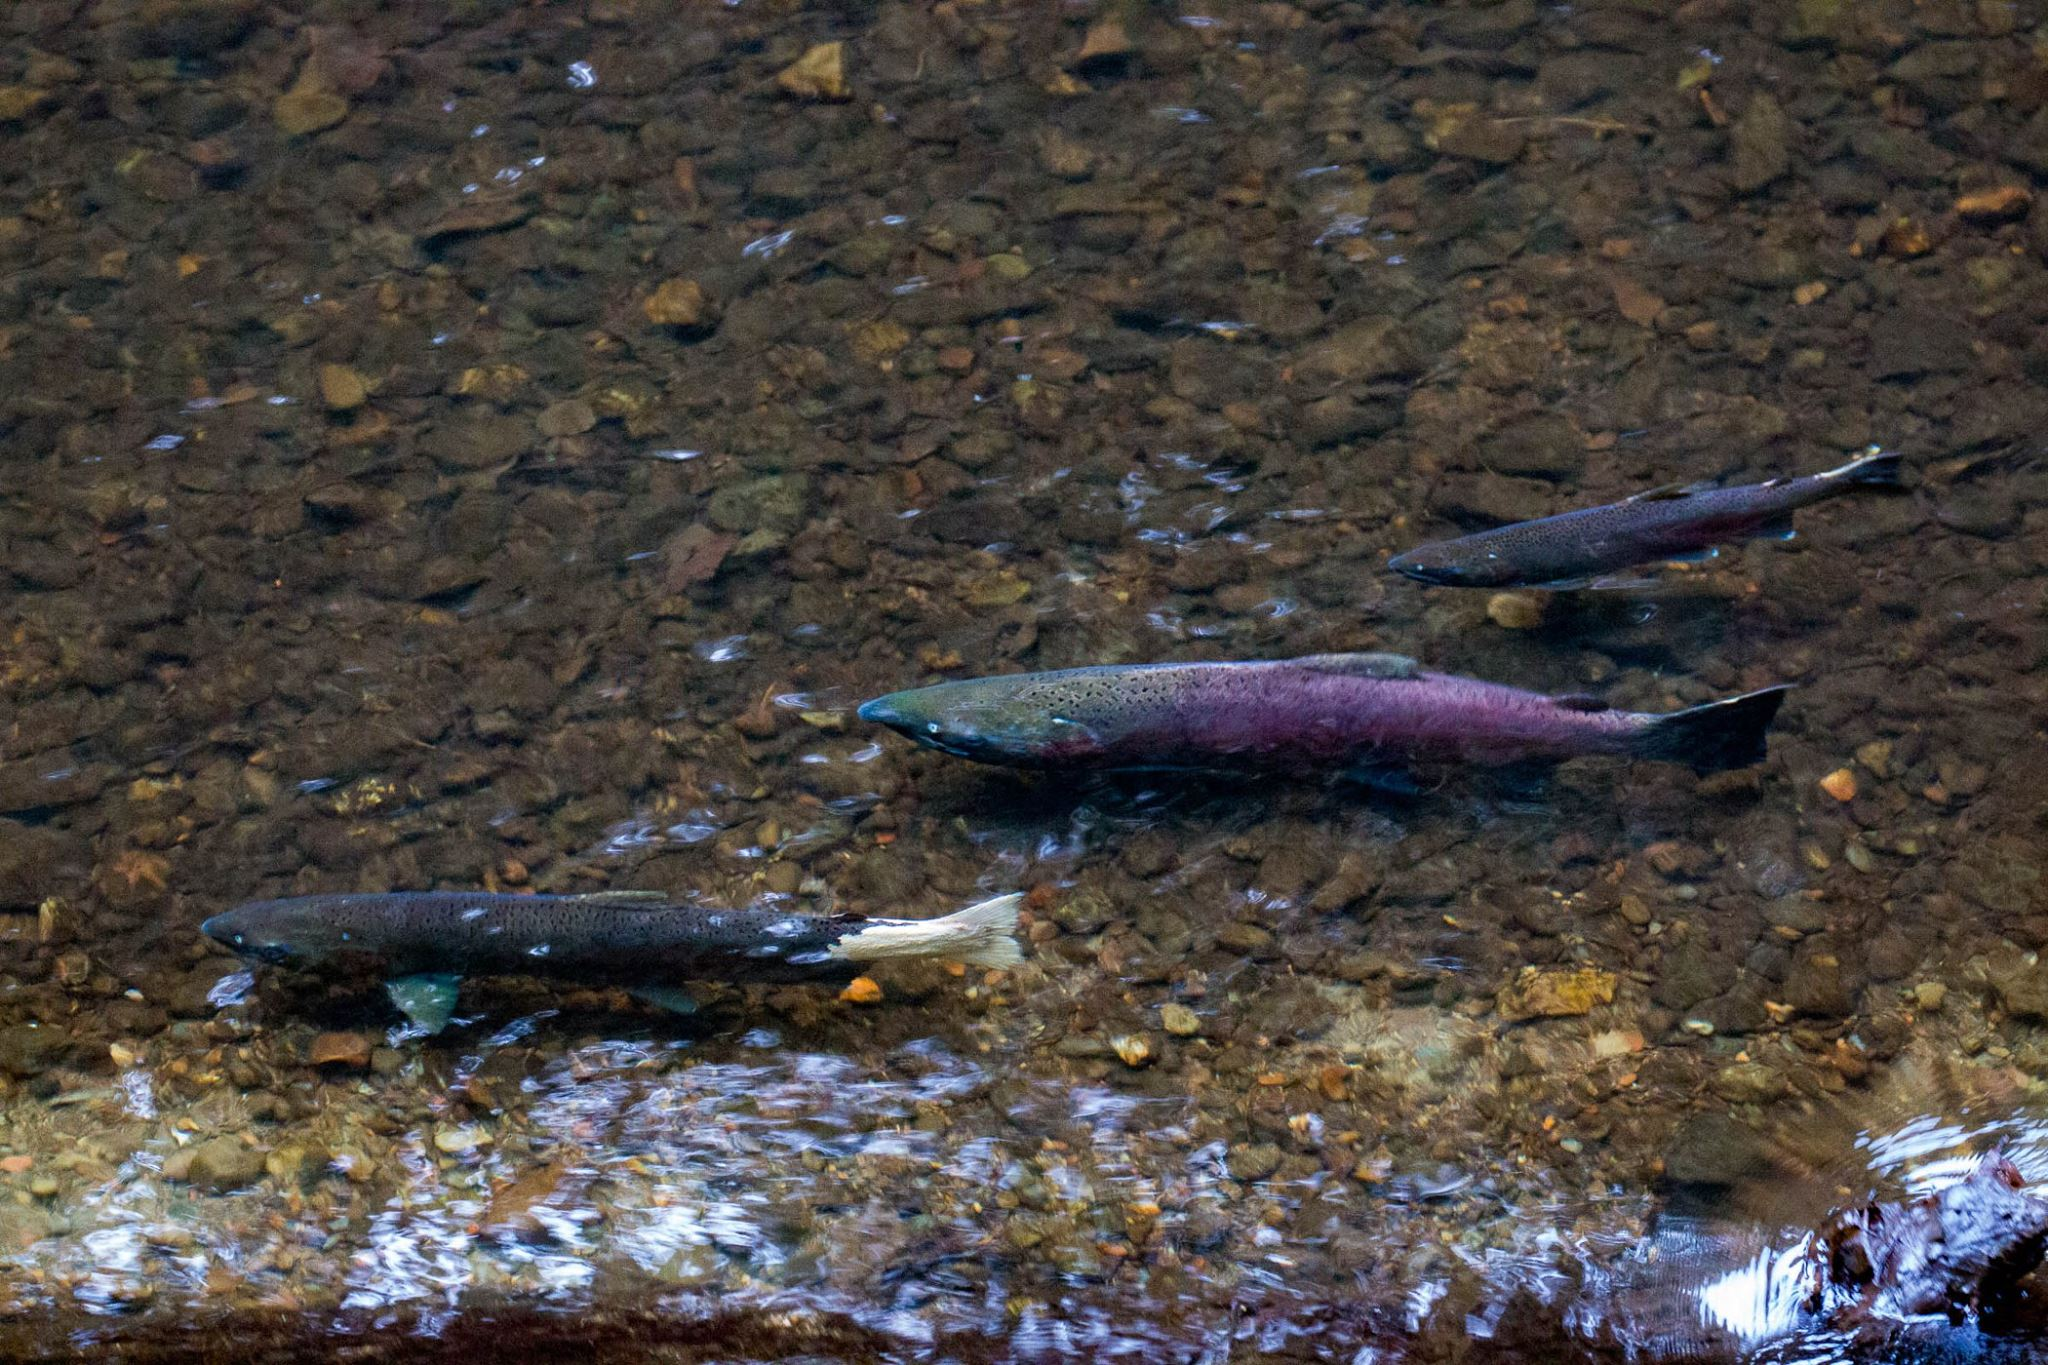 Court Rules Marin County's Protections for Endangered Coho Salmon Inadequate